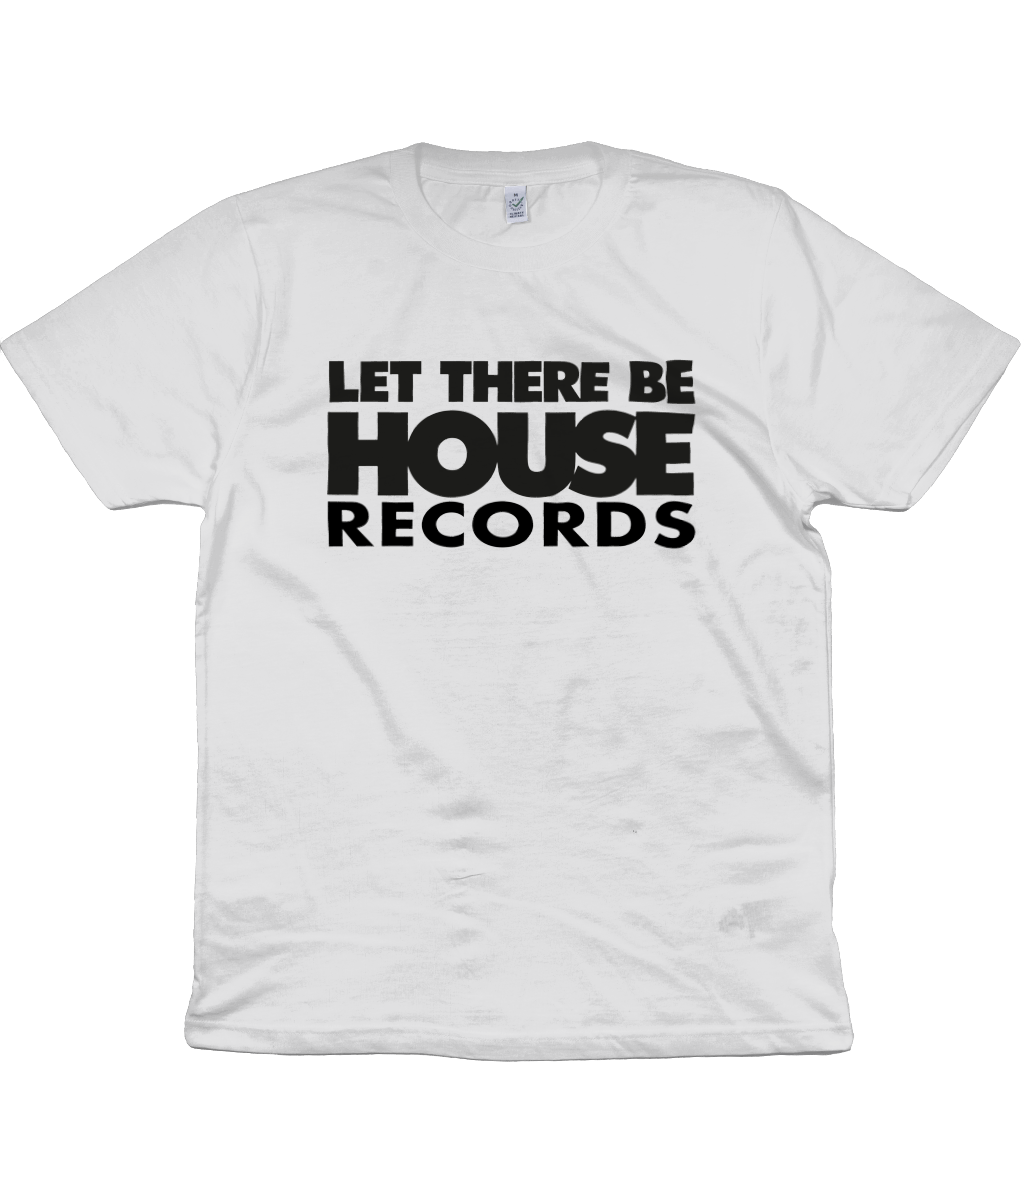 T-Shirt LTBH Records Black